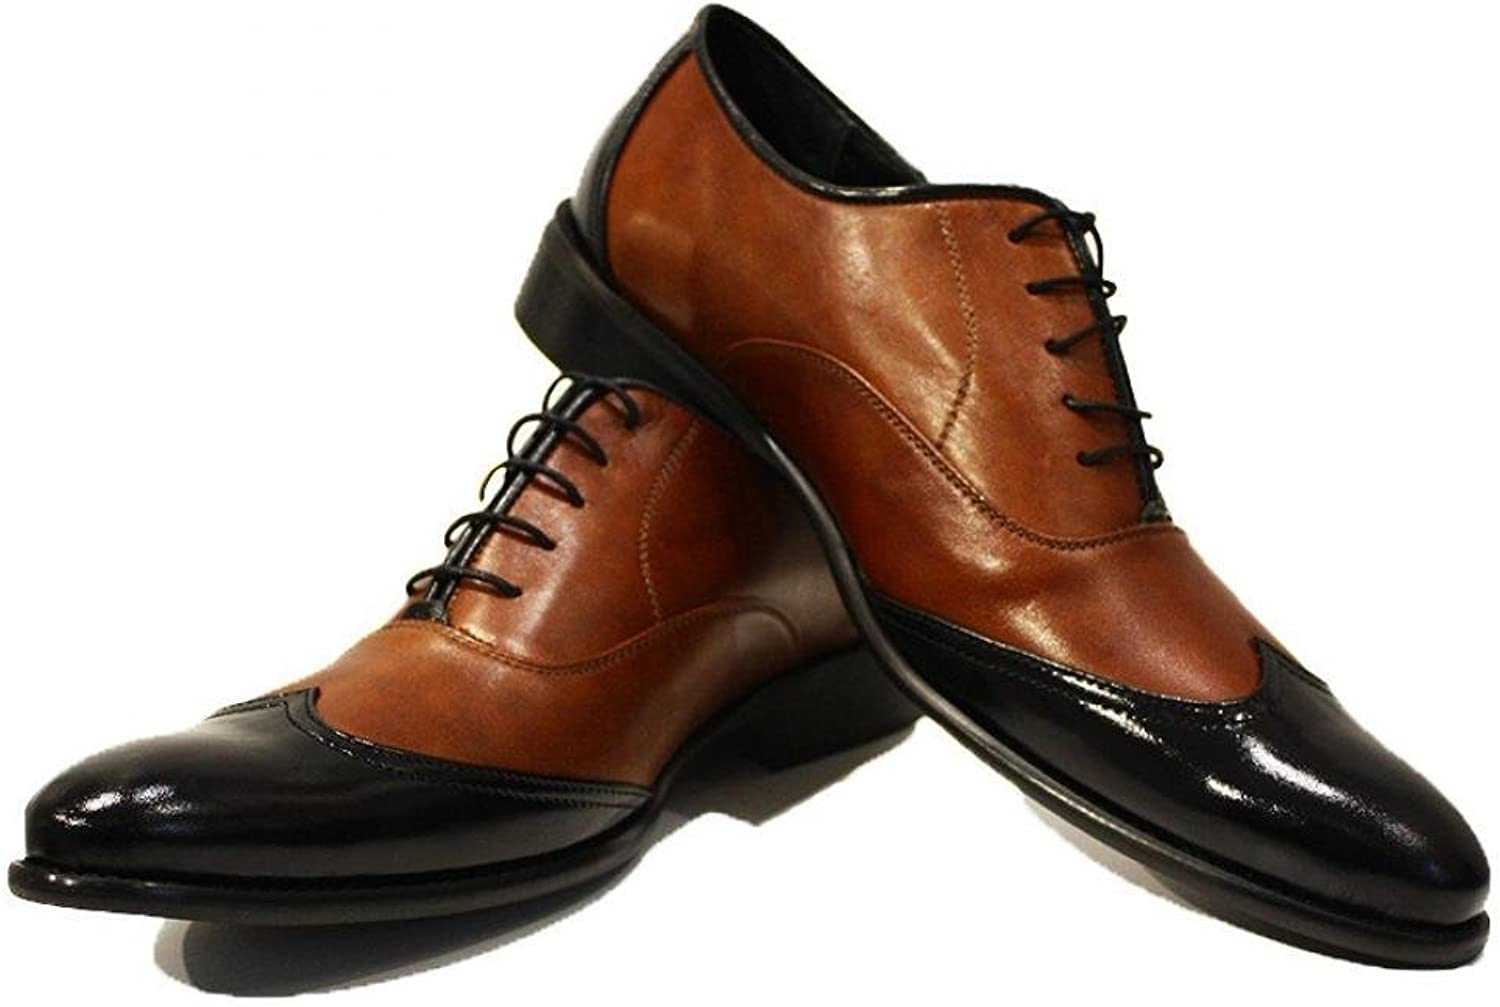 Modello Gaetano - Handmade Italian Leather Mens color Brown Wing Tip Dress shoes Oxfords - Cowhide Smooth Leather - Lace-Up